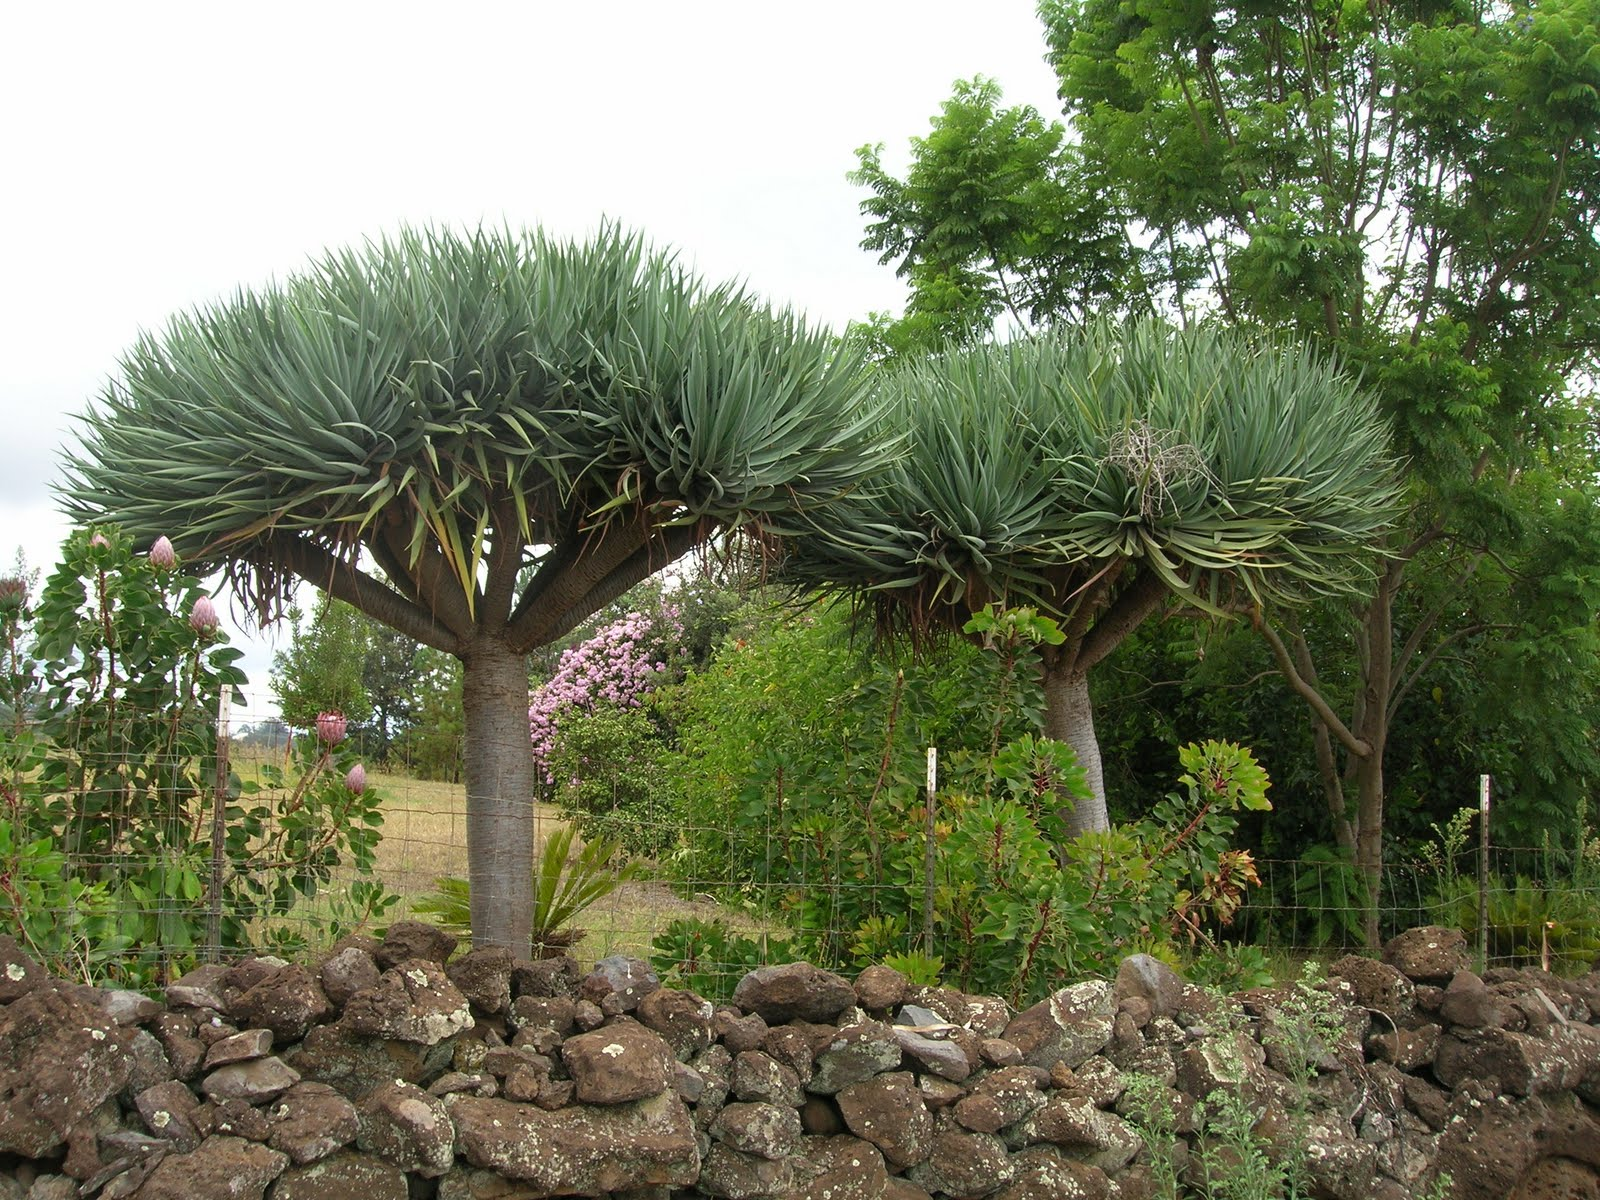 Fact about Dracaena draco